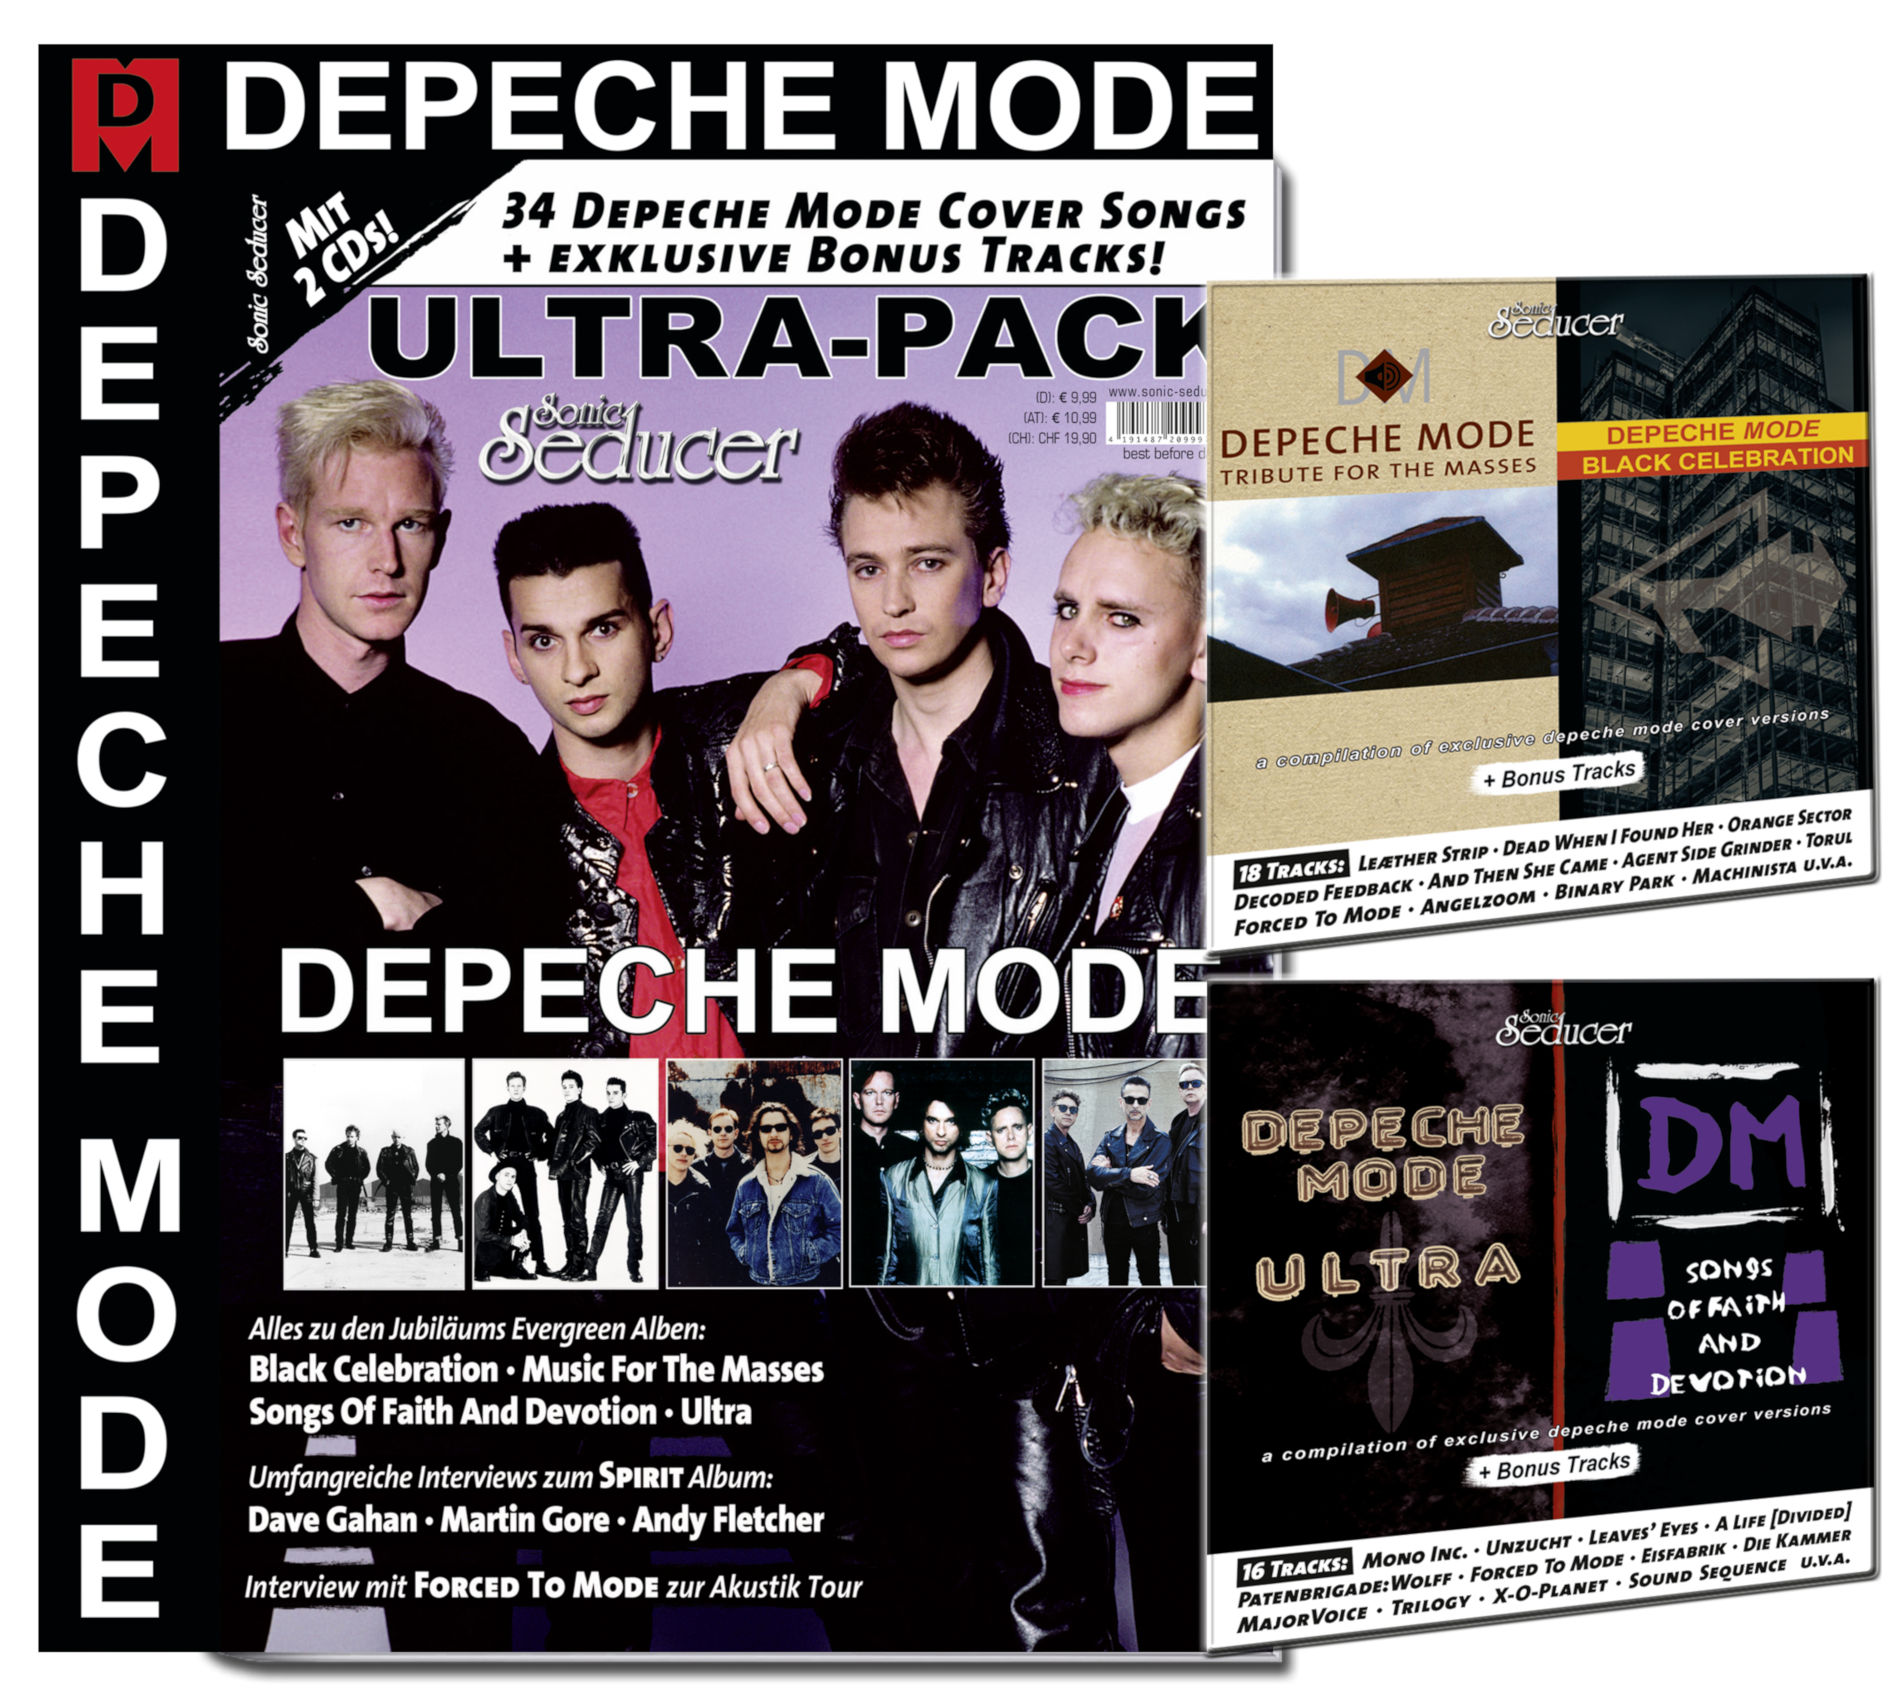 Depeche Mode Ultra Pack Gross